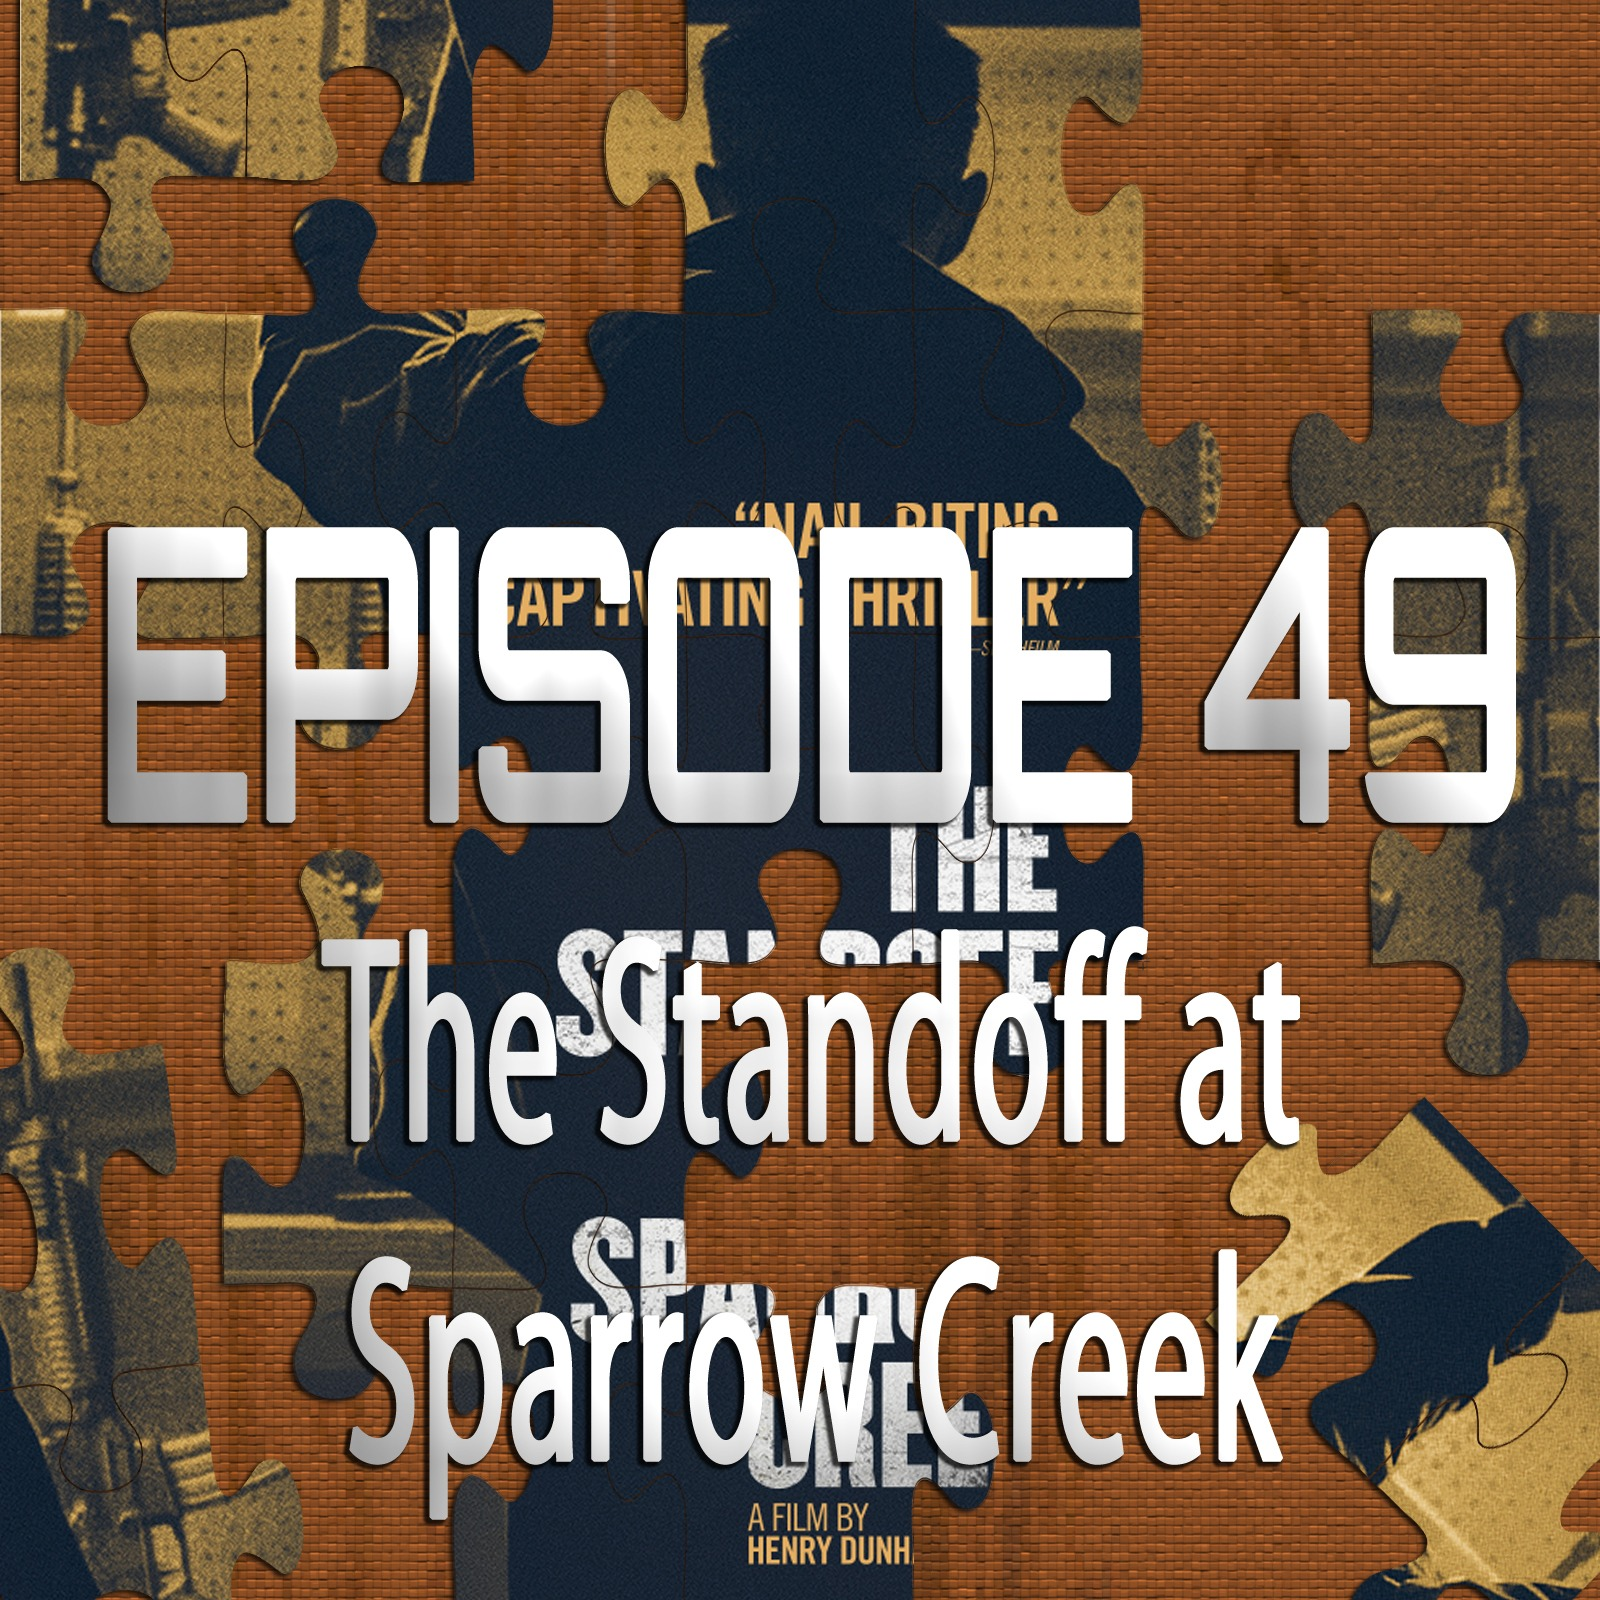 The Standoff at Sparrow Creek (Featuring David Quinones)